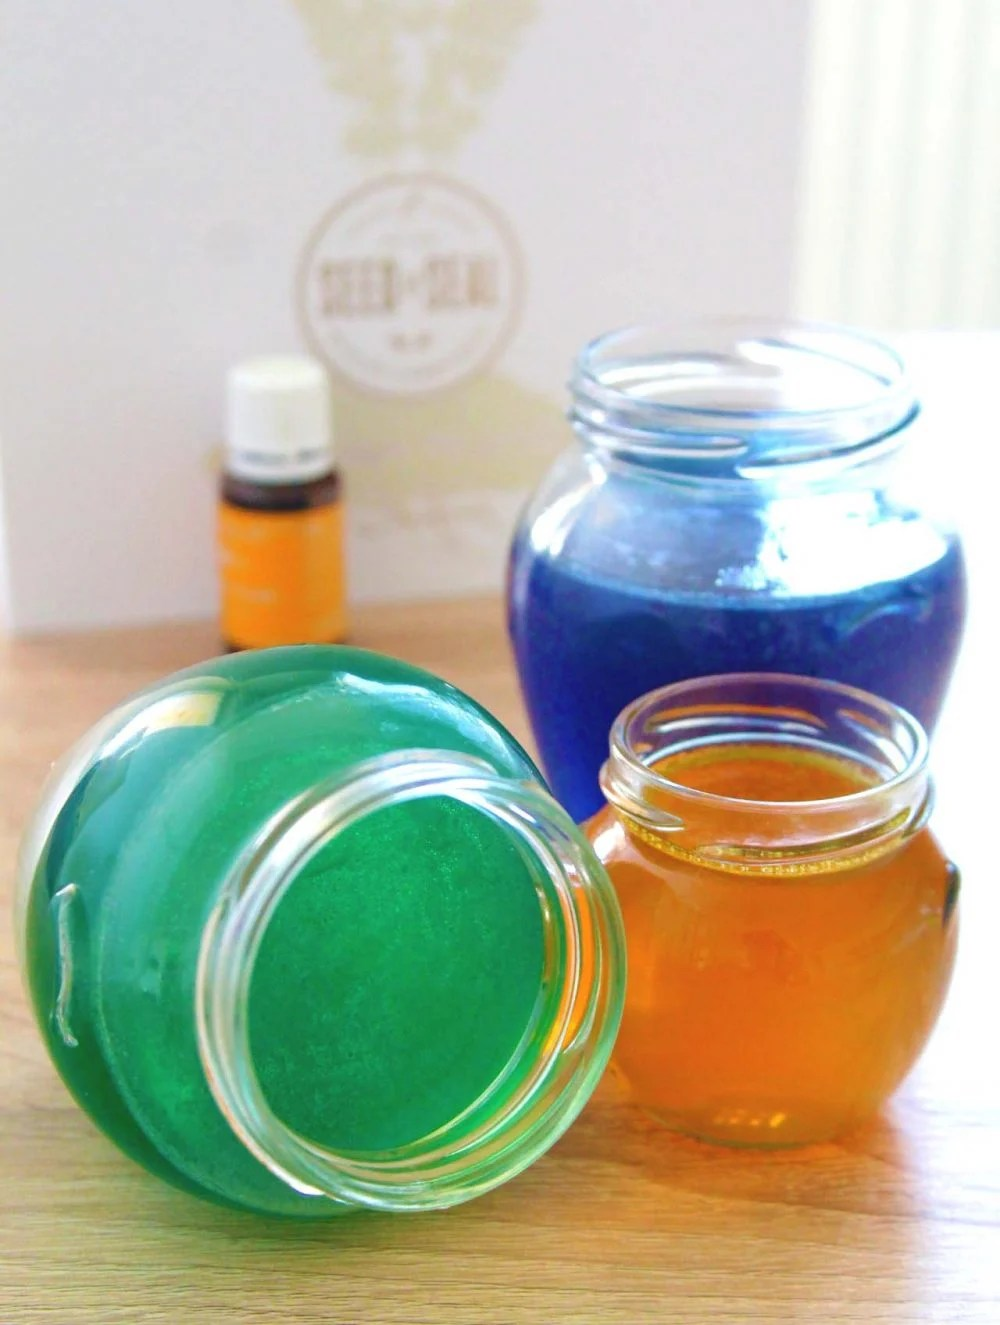 This gel air freshener is useful, affordable and so easy peasy to make!